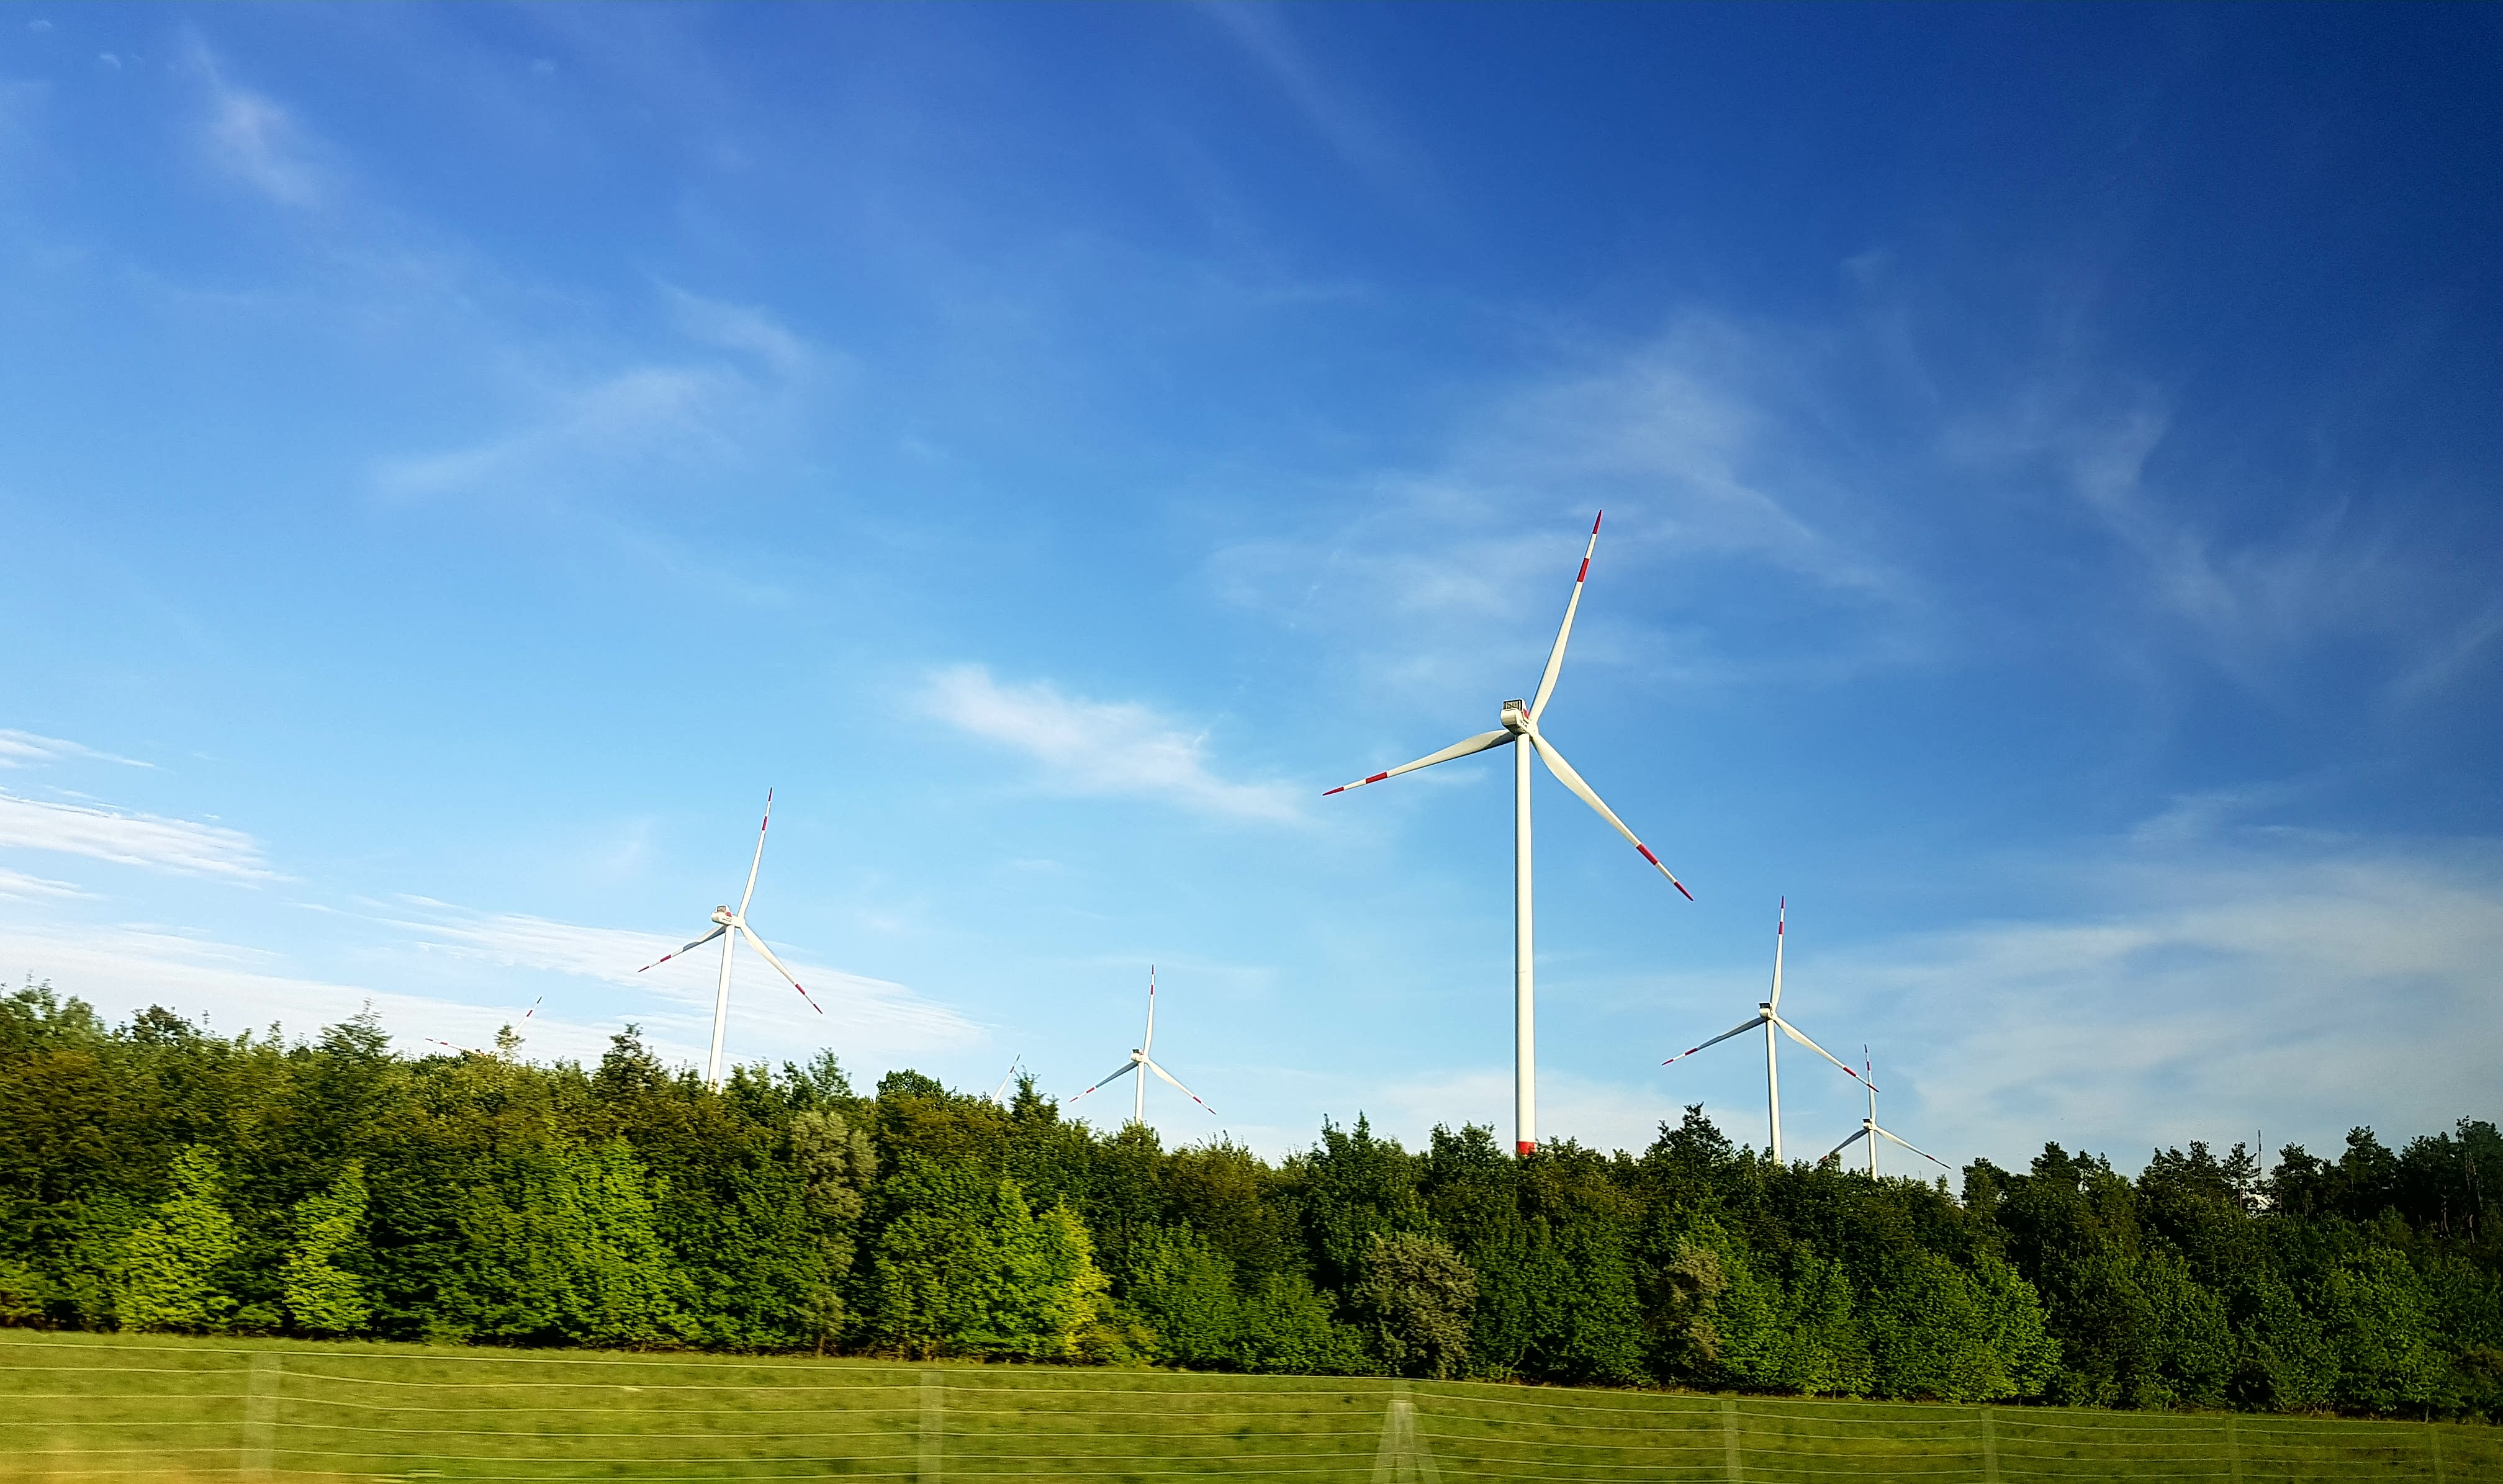 Wind turbines line a blue sky surrounded by green forest